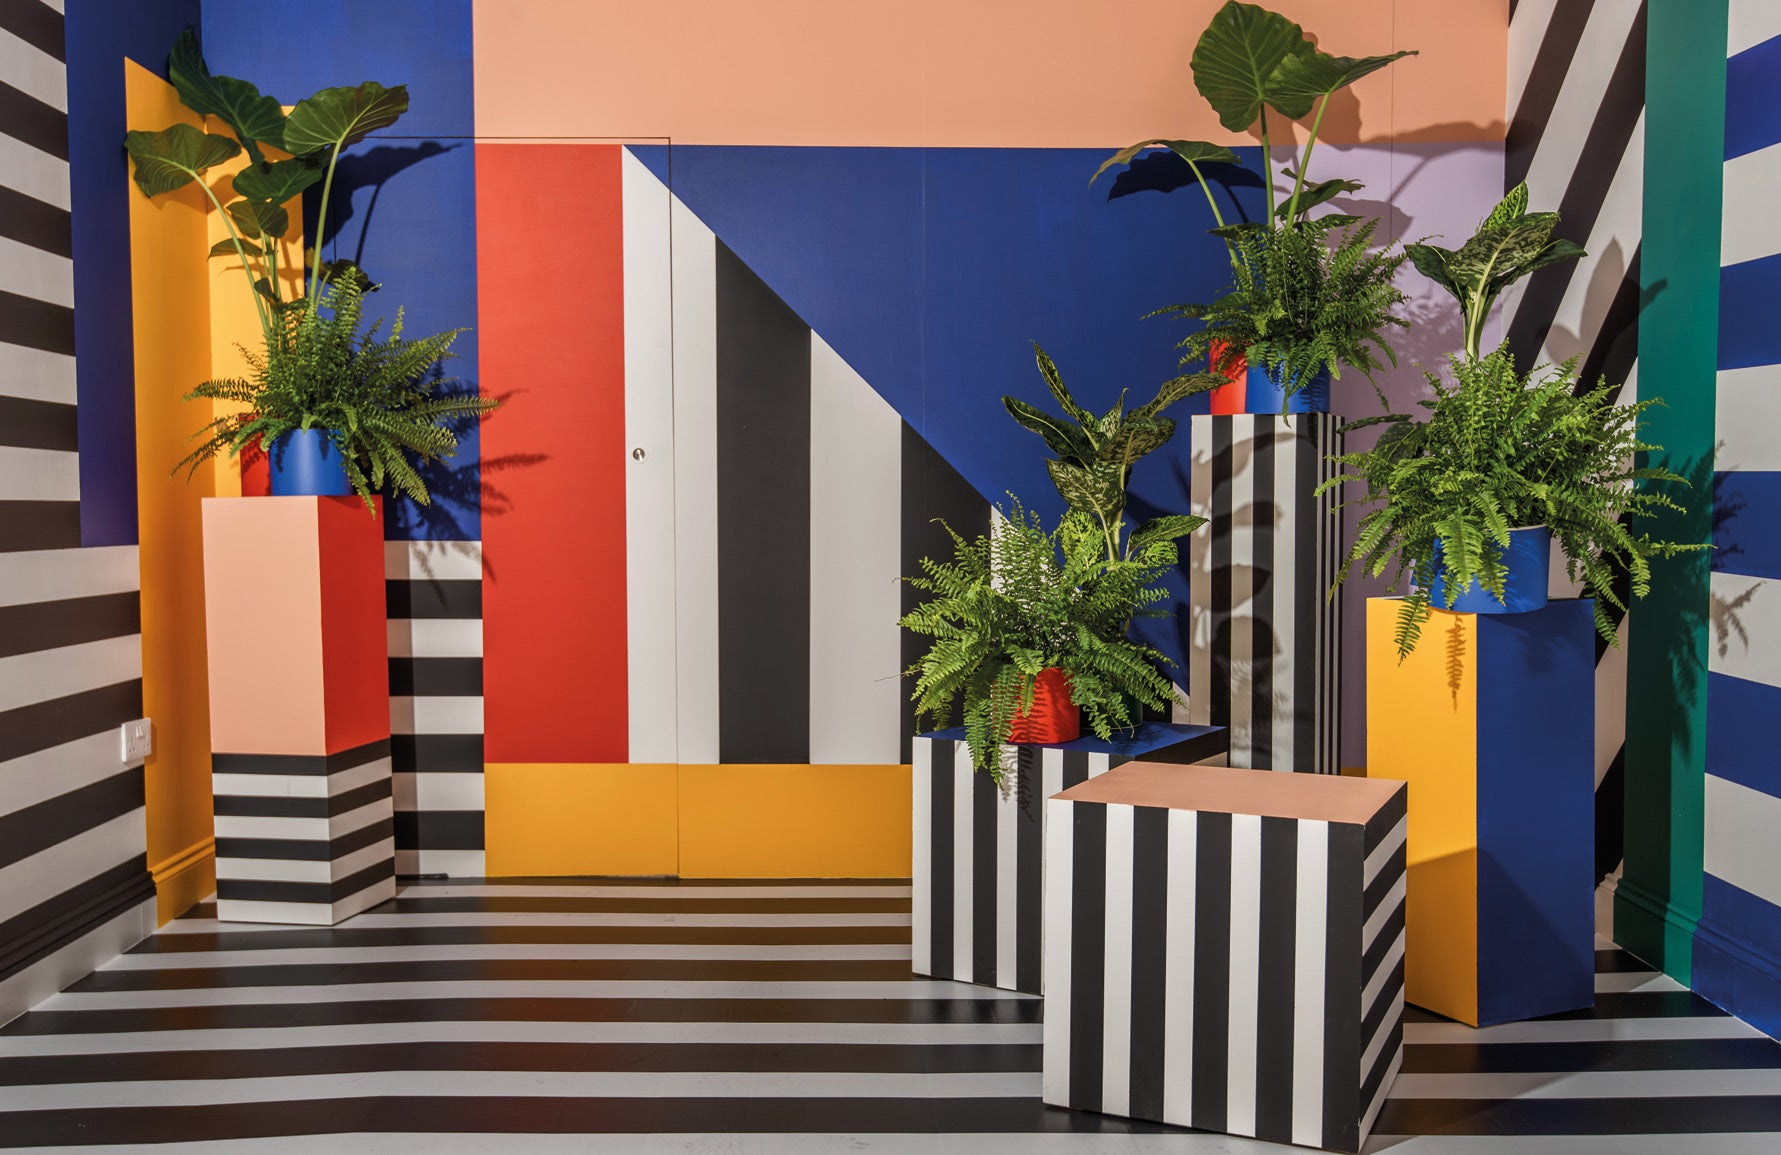 Memphis Design | Camille Walala | Memphis Interiors | Read more and shop the look in The Luxurist at LuxDeco.com